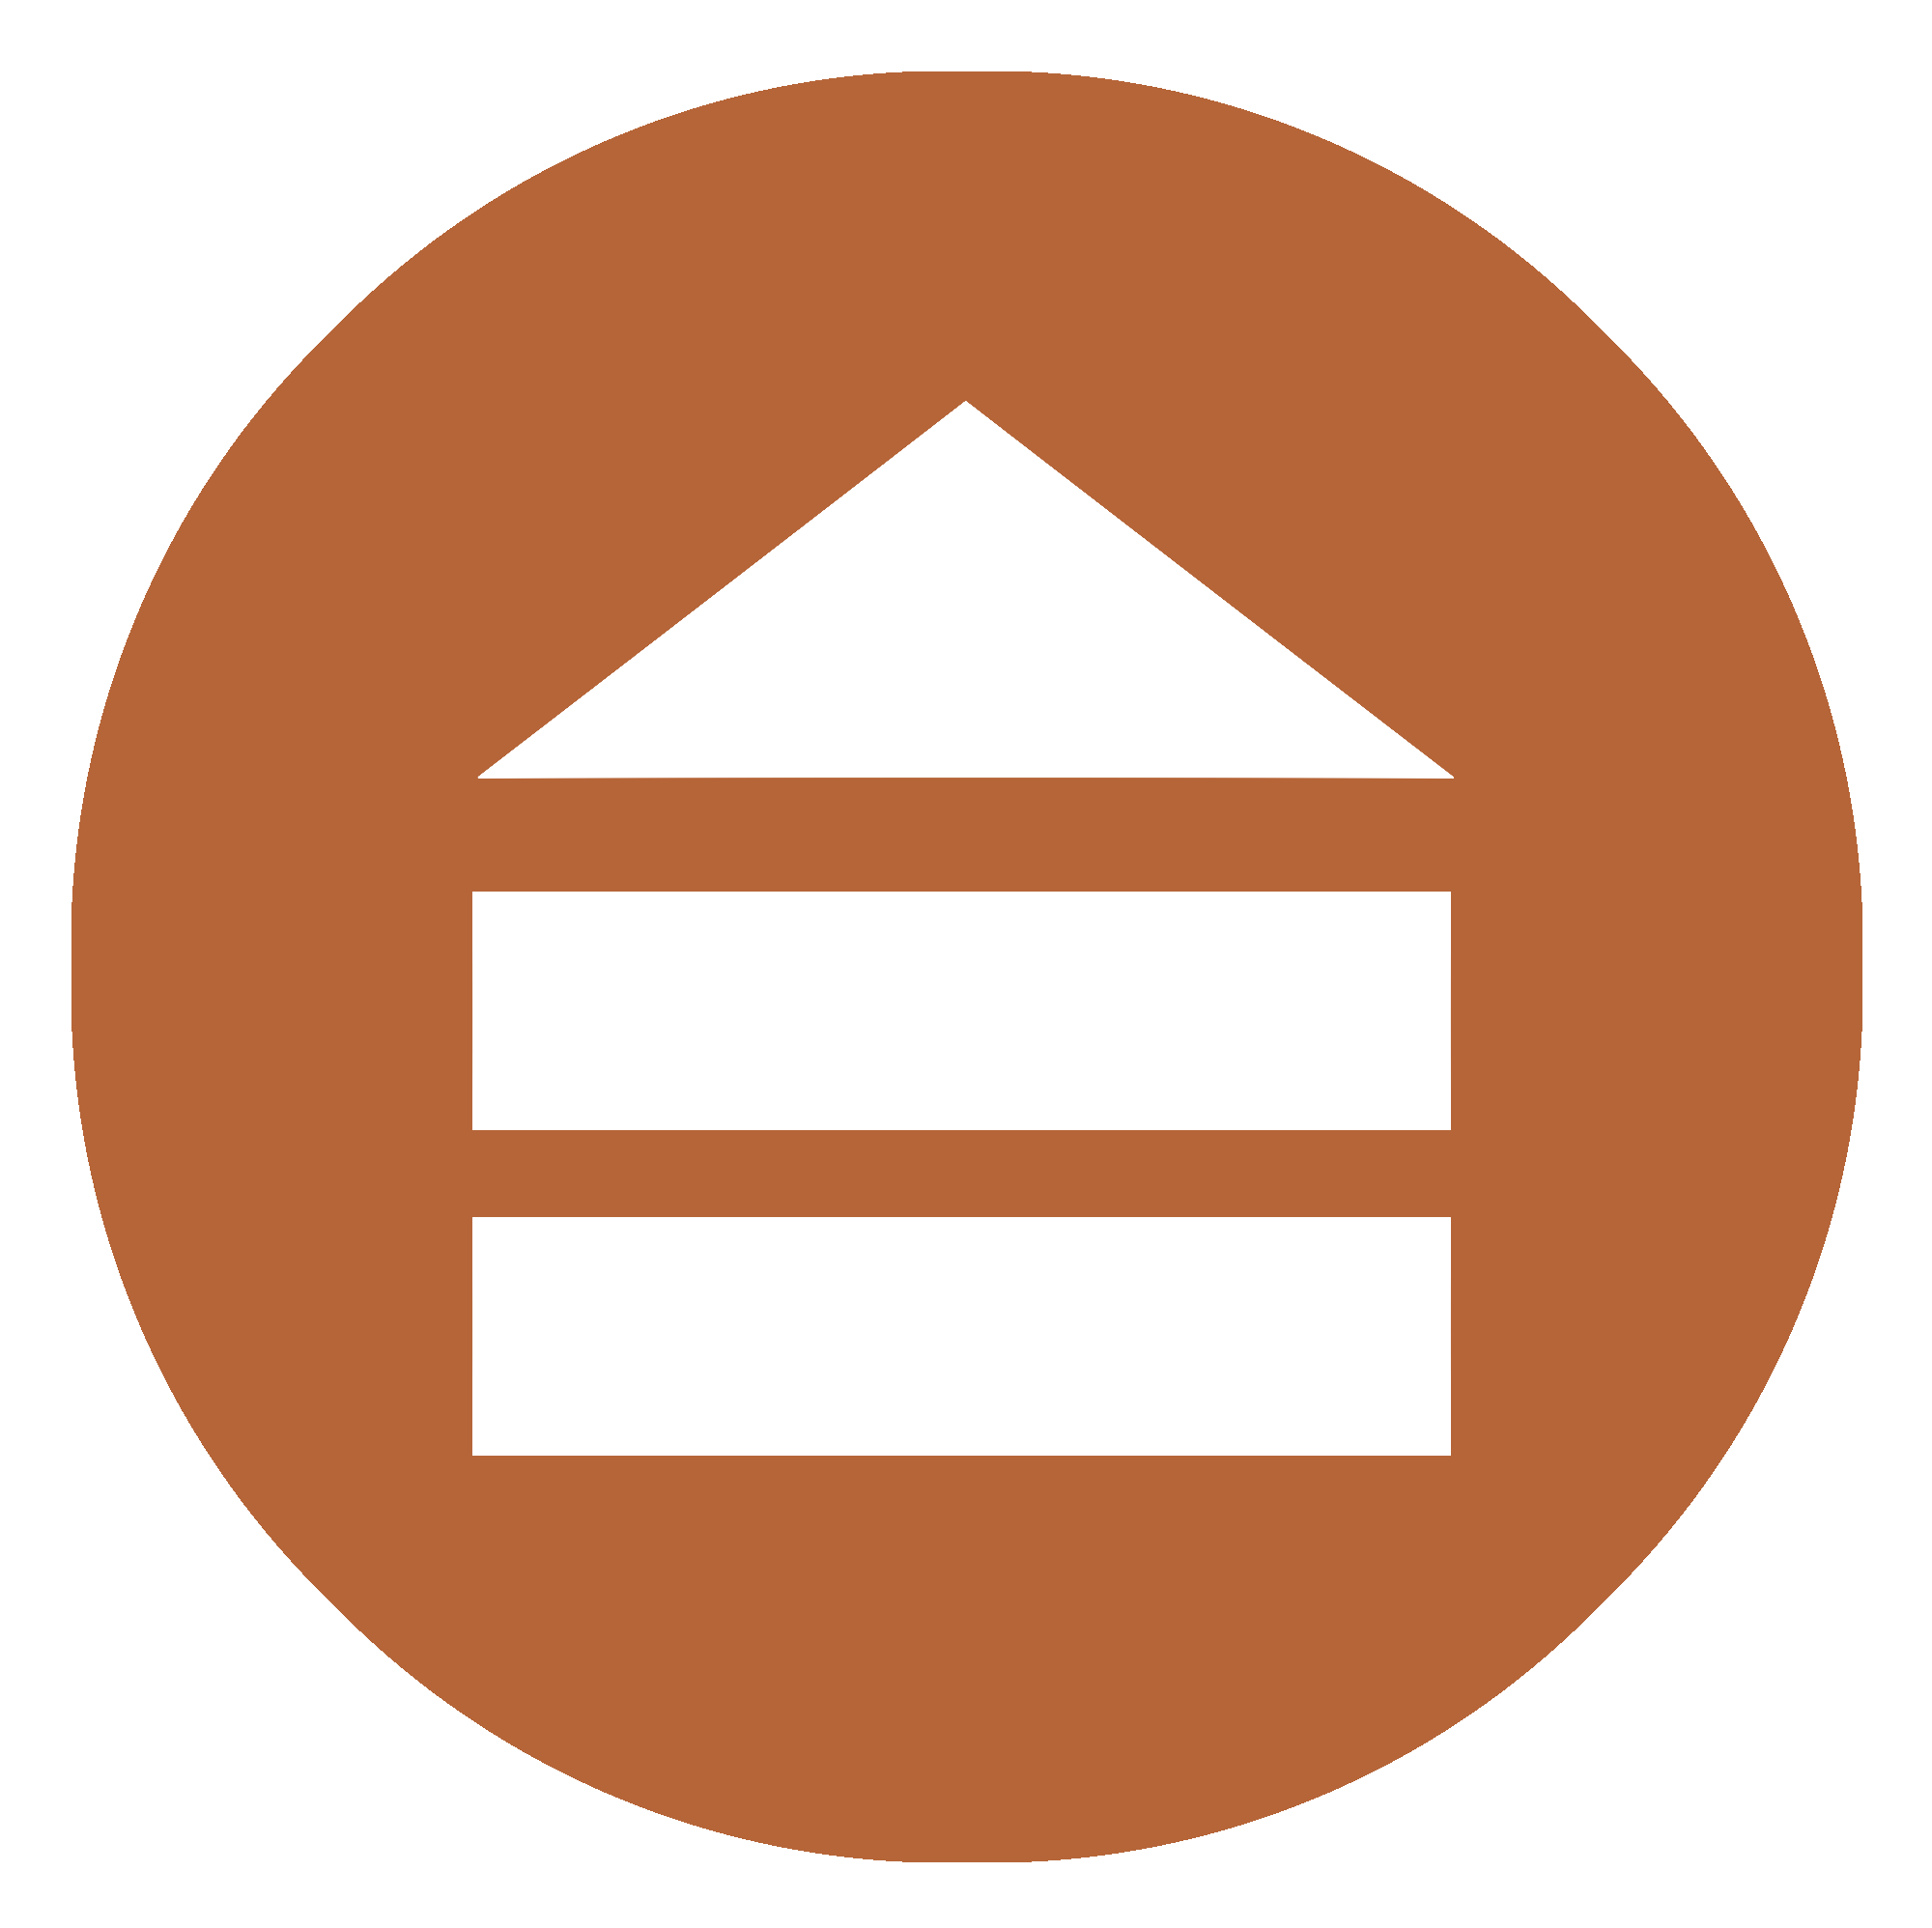 SUB_ICON-SHELTER.png